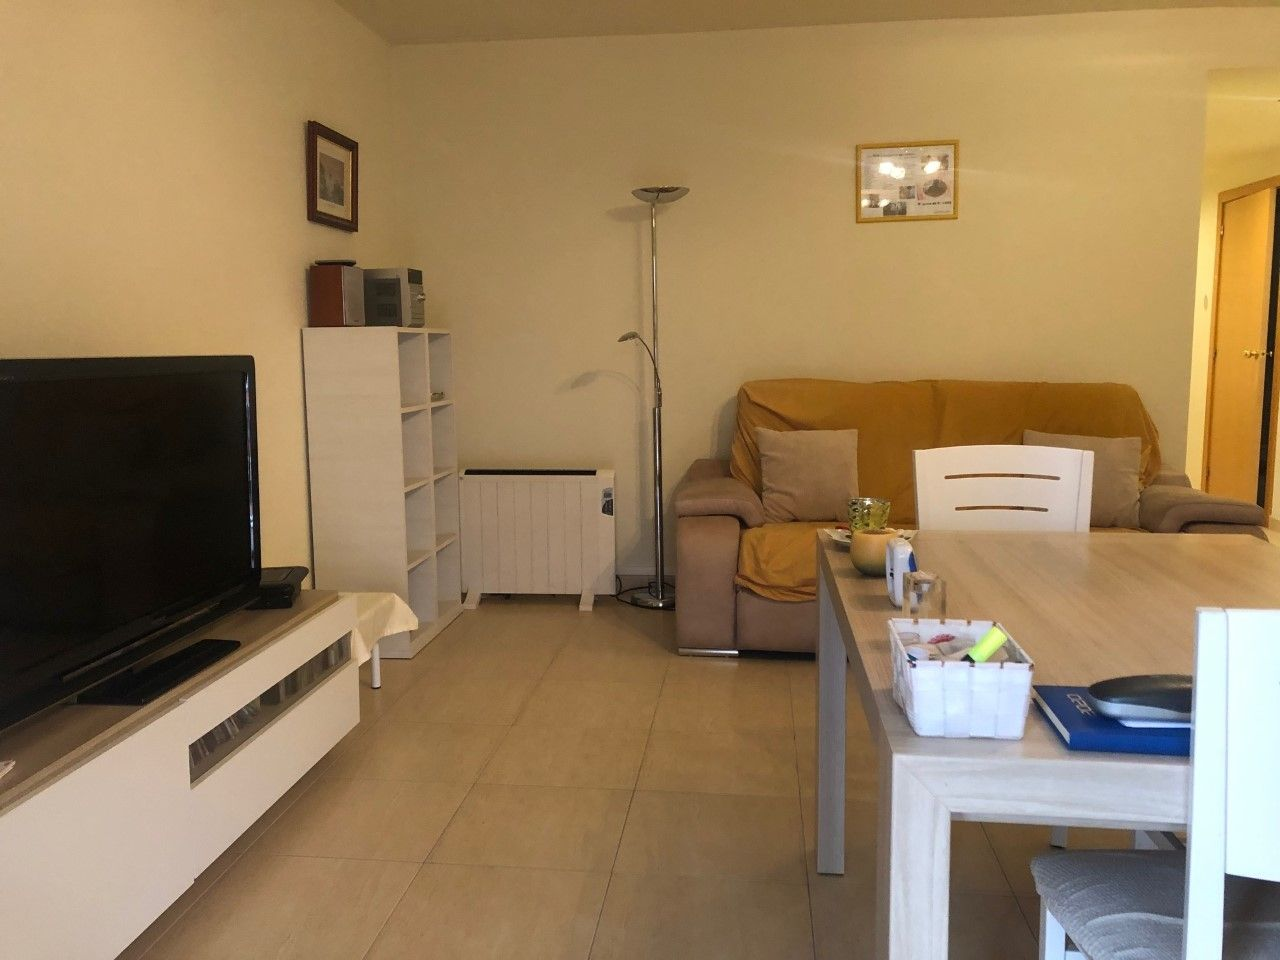 Piso  Carrer riuter. 3 hab.dobles ,parking y trastero